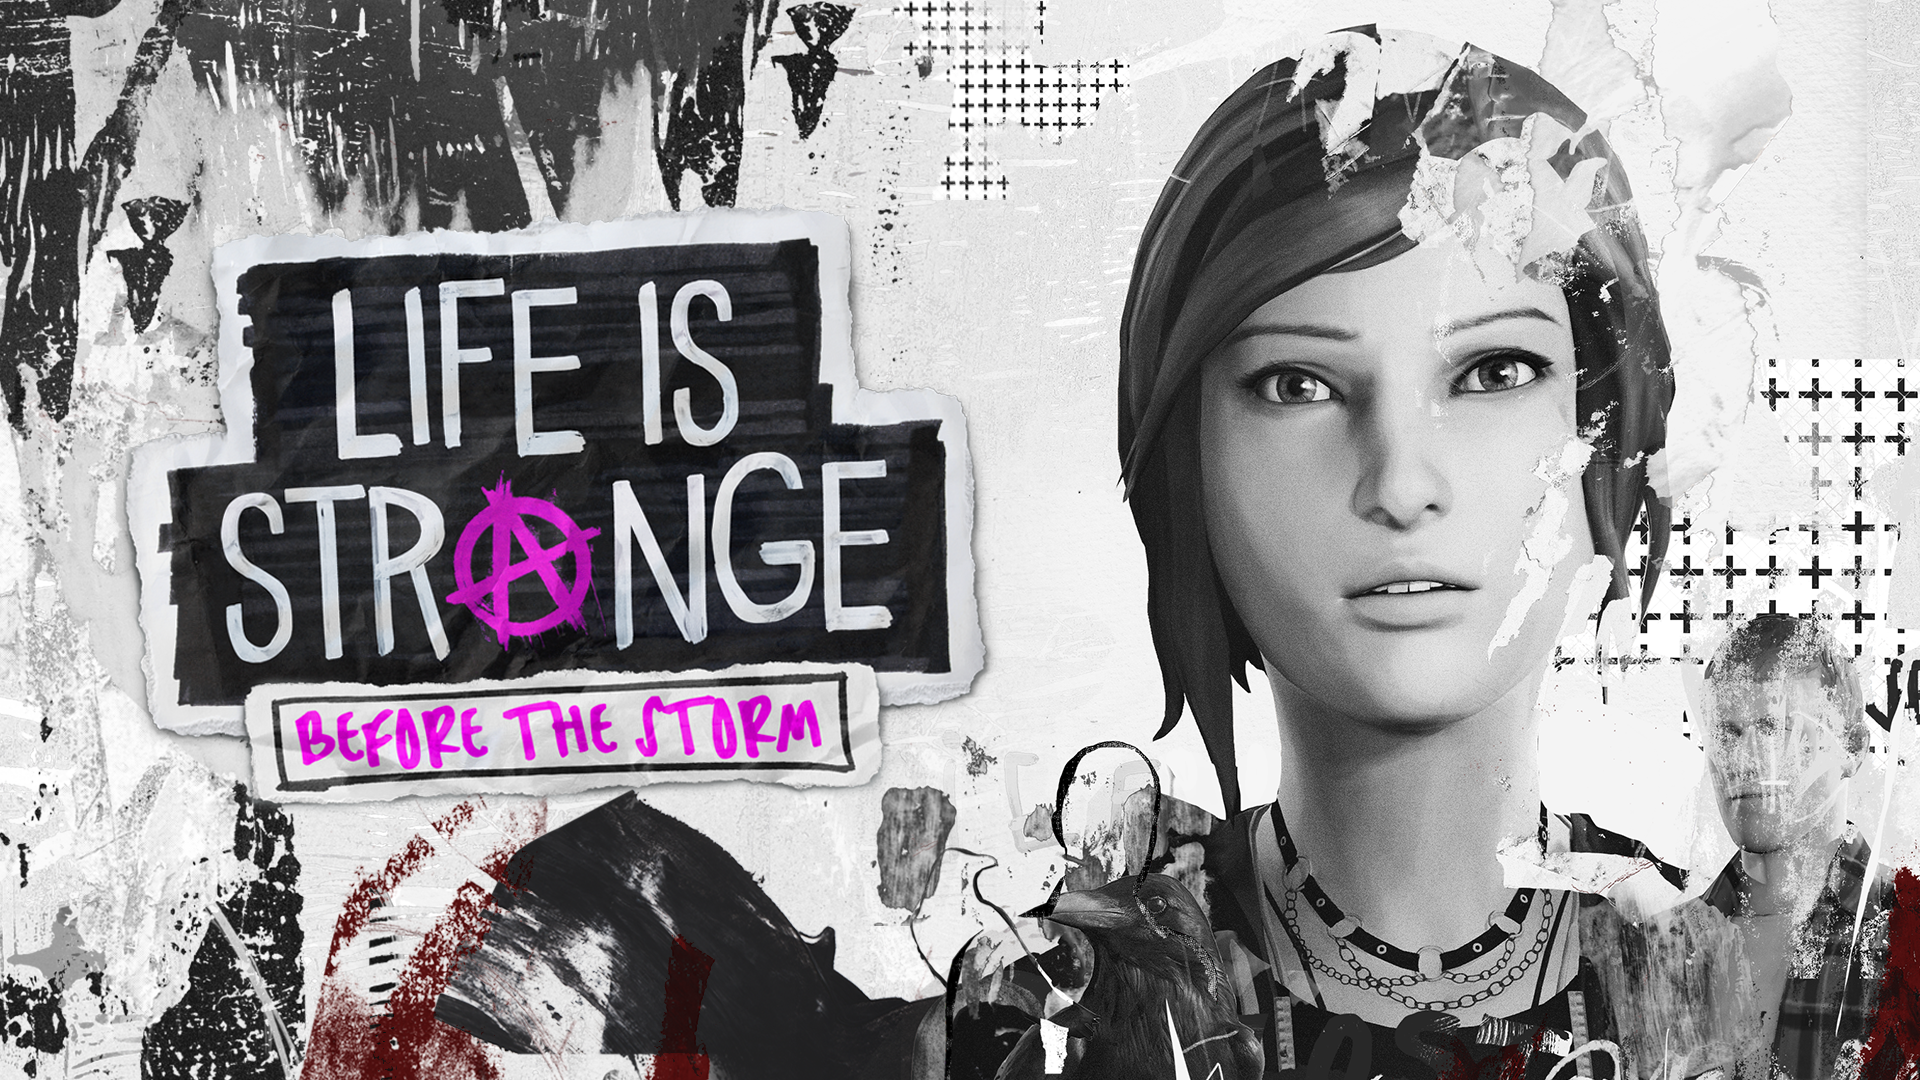 Life is Strange Before The Storm HD Wallpaper Background Image 1920x1080